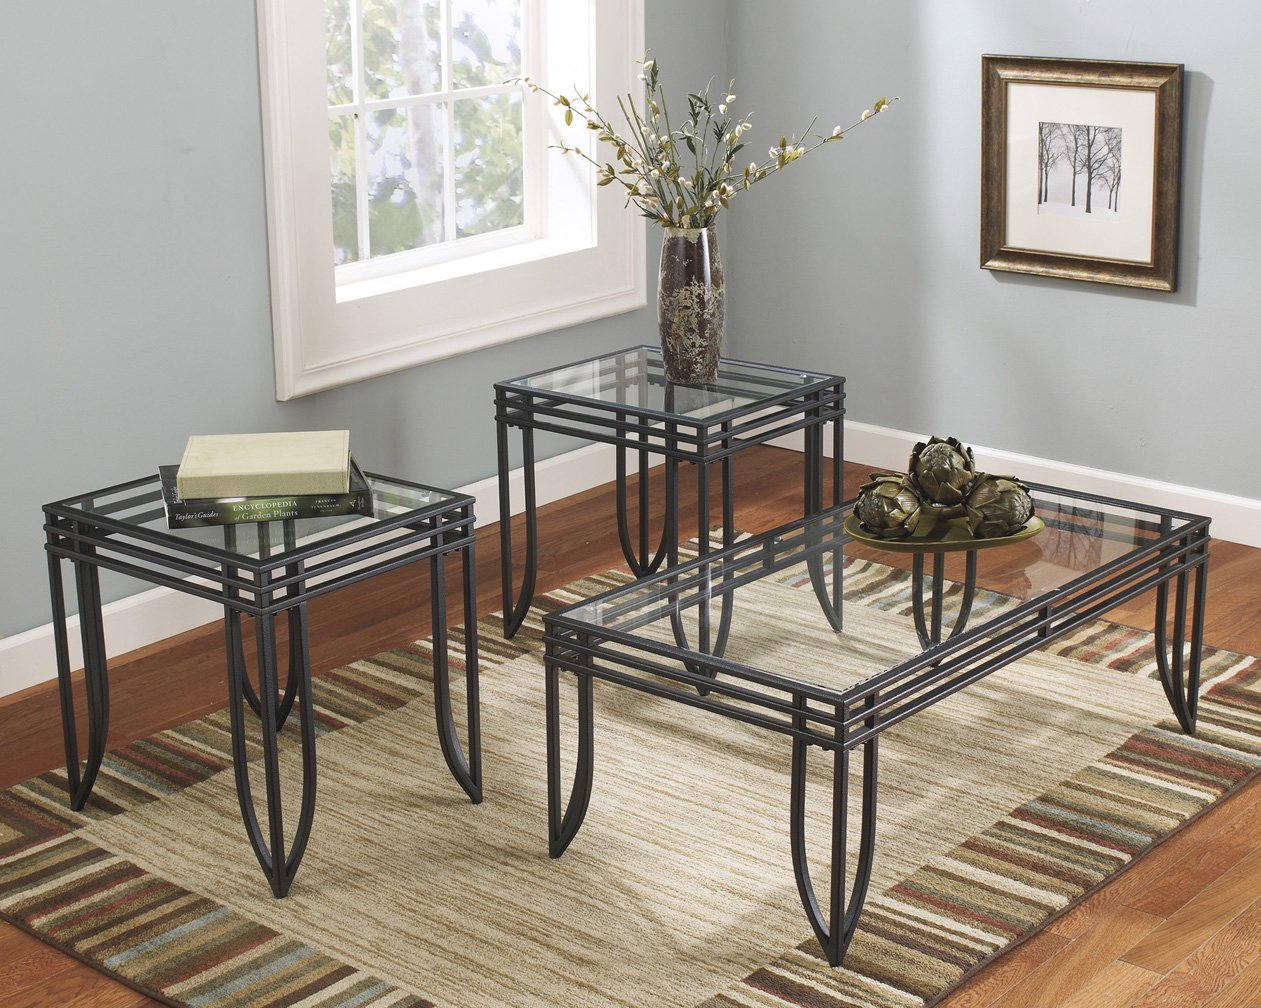 Roundhill Furniture 3307 Matrix 3-in-1 Metal Frame Accent Coffee 2 End Table Set